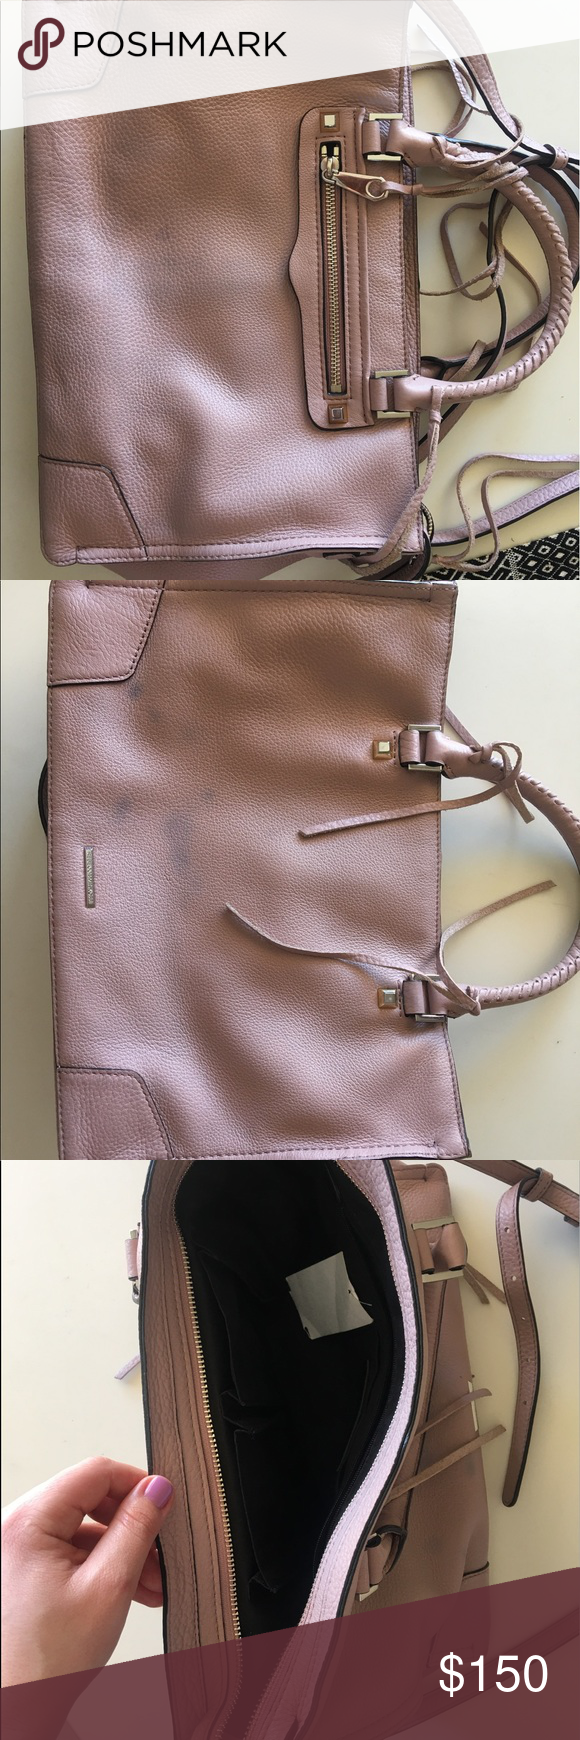 Regan Rebecca Minkoff satchel Blush pinky cross-body. Interior is flawless and minor denim rub off on the back panel of the purse. Please see pictures for more details. Rebecca Minkoff Bags Crossbody Bags